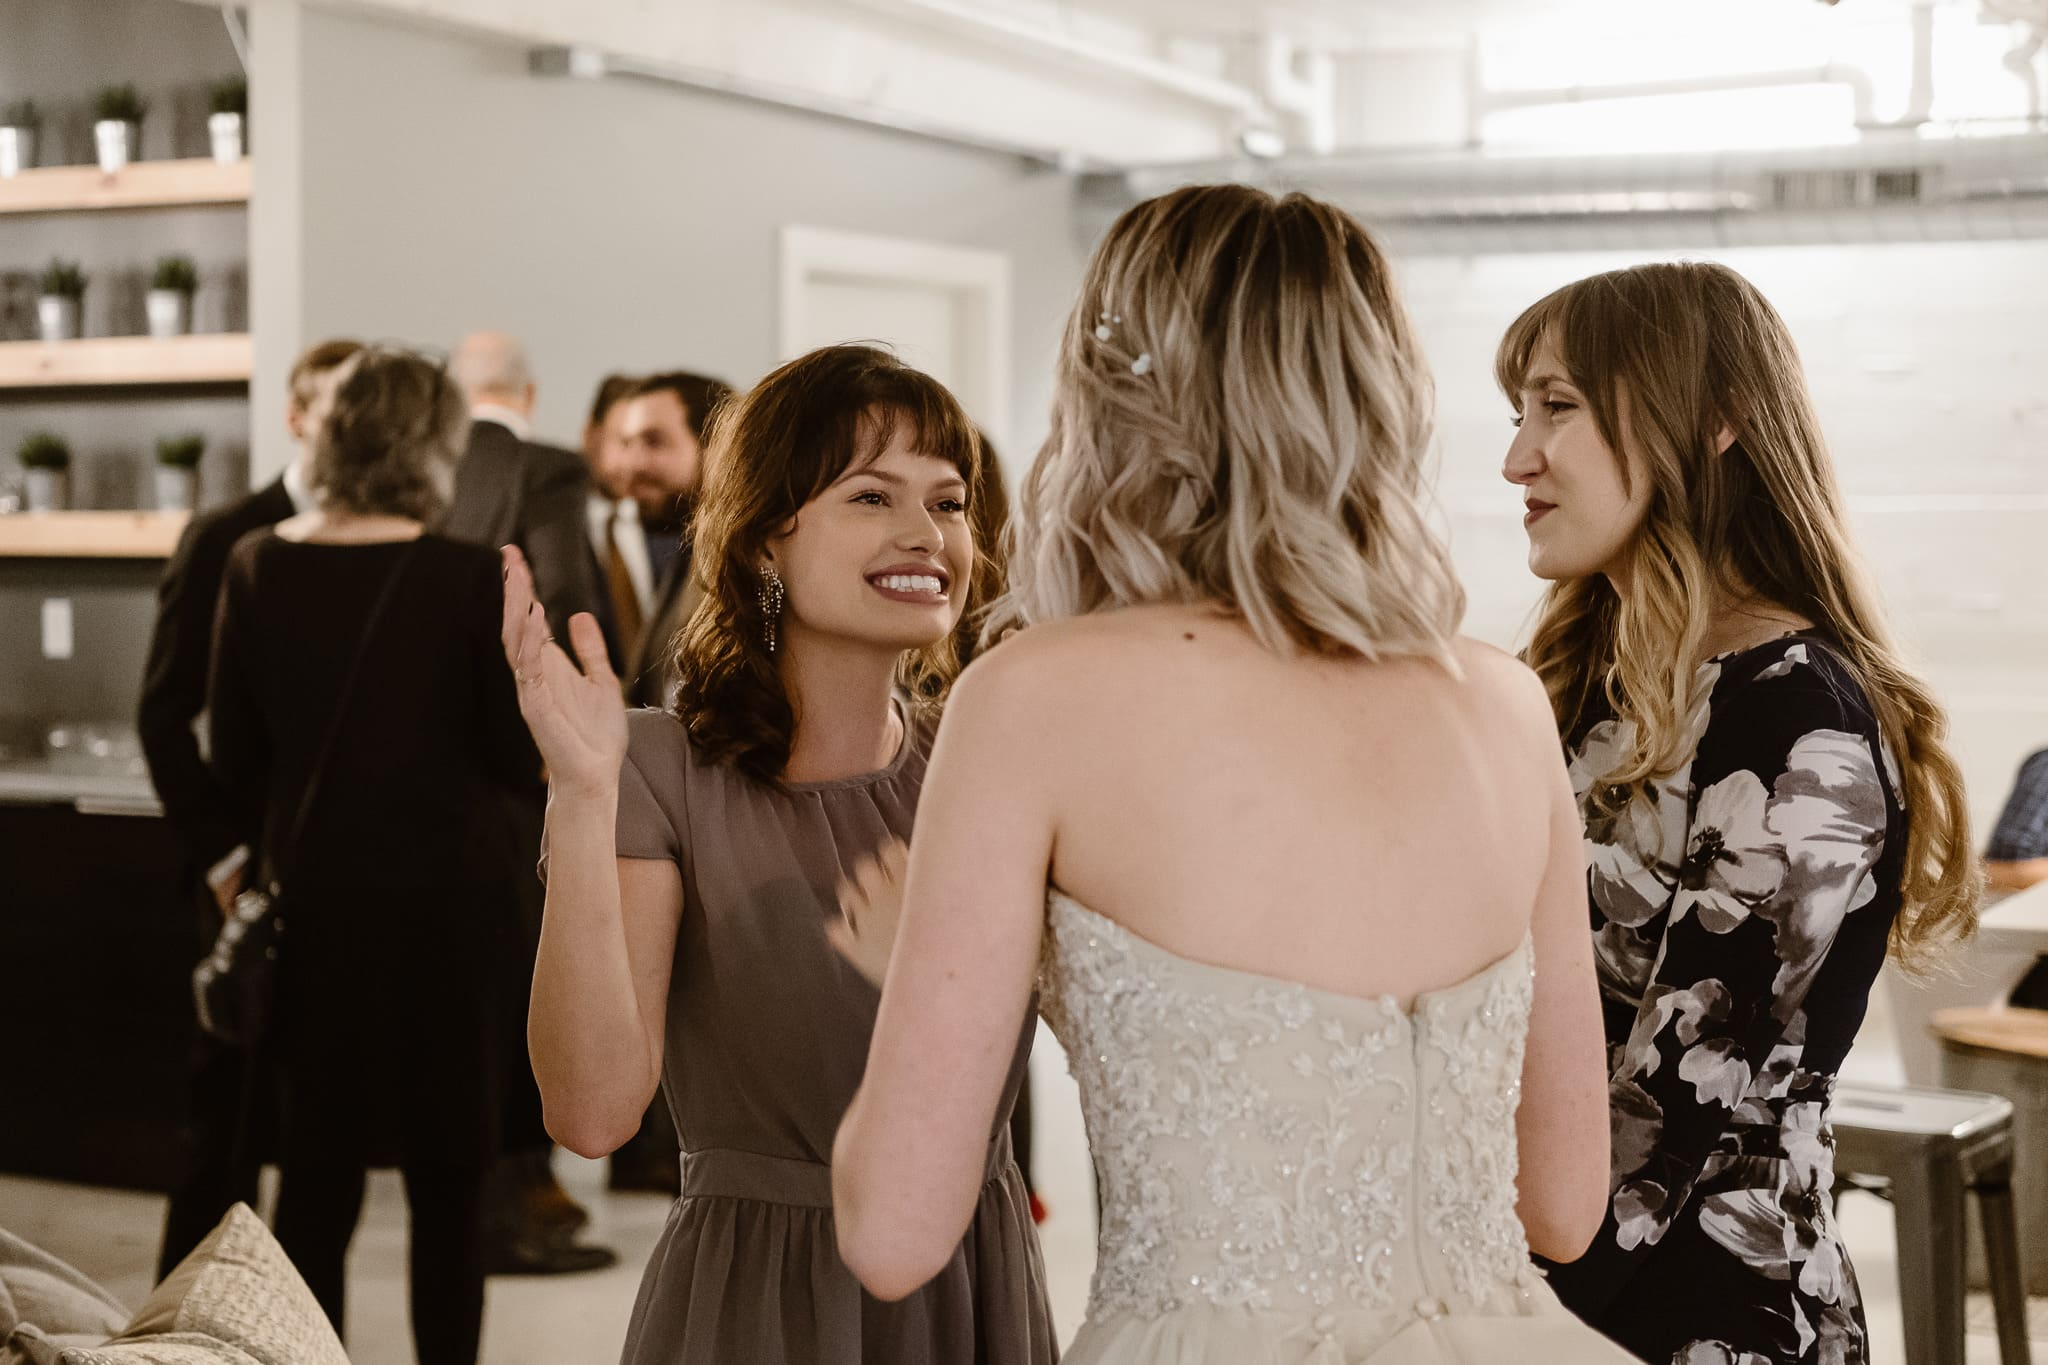 St Vrain Wedding Photographer | Longmont Wedding Photographer | Colorado Winter Wedding Photographer, Colorado industrial chic wedding ceremony, cocktail hour photos